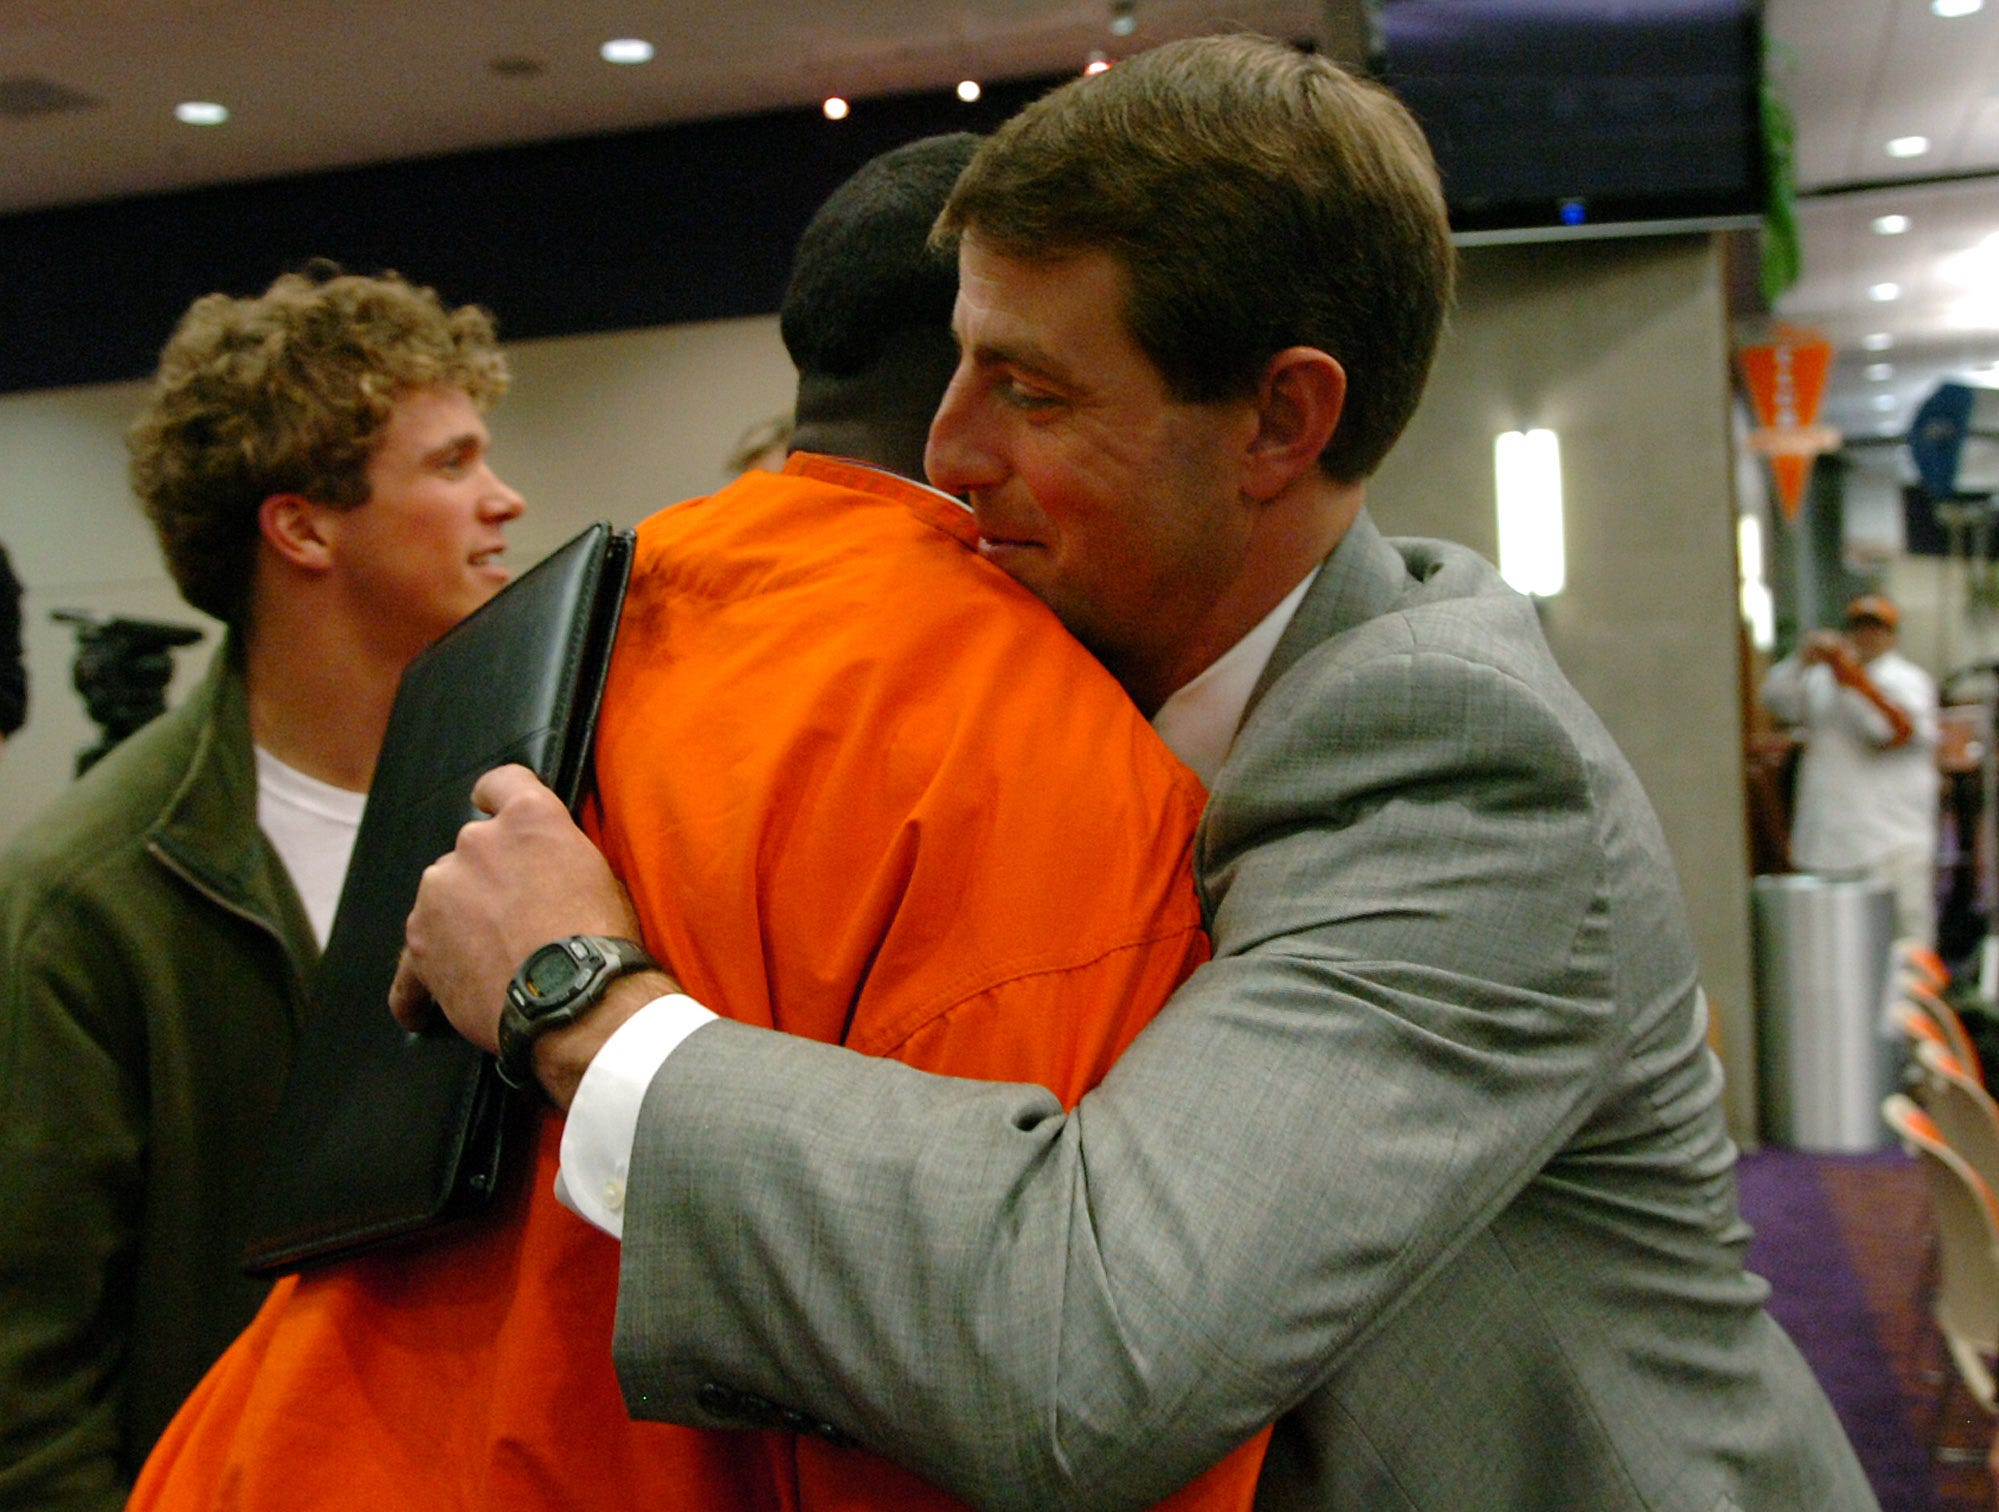 Dabo Swinney hugs running back James Davis after a press conference at Memorial Stadium in Clemson Monday, December 1,  2008 where Swinney was named Clemson's head football coach during a press conference